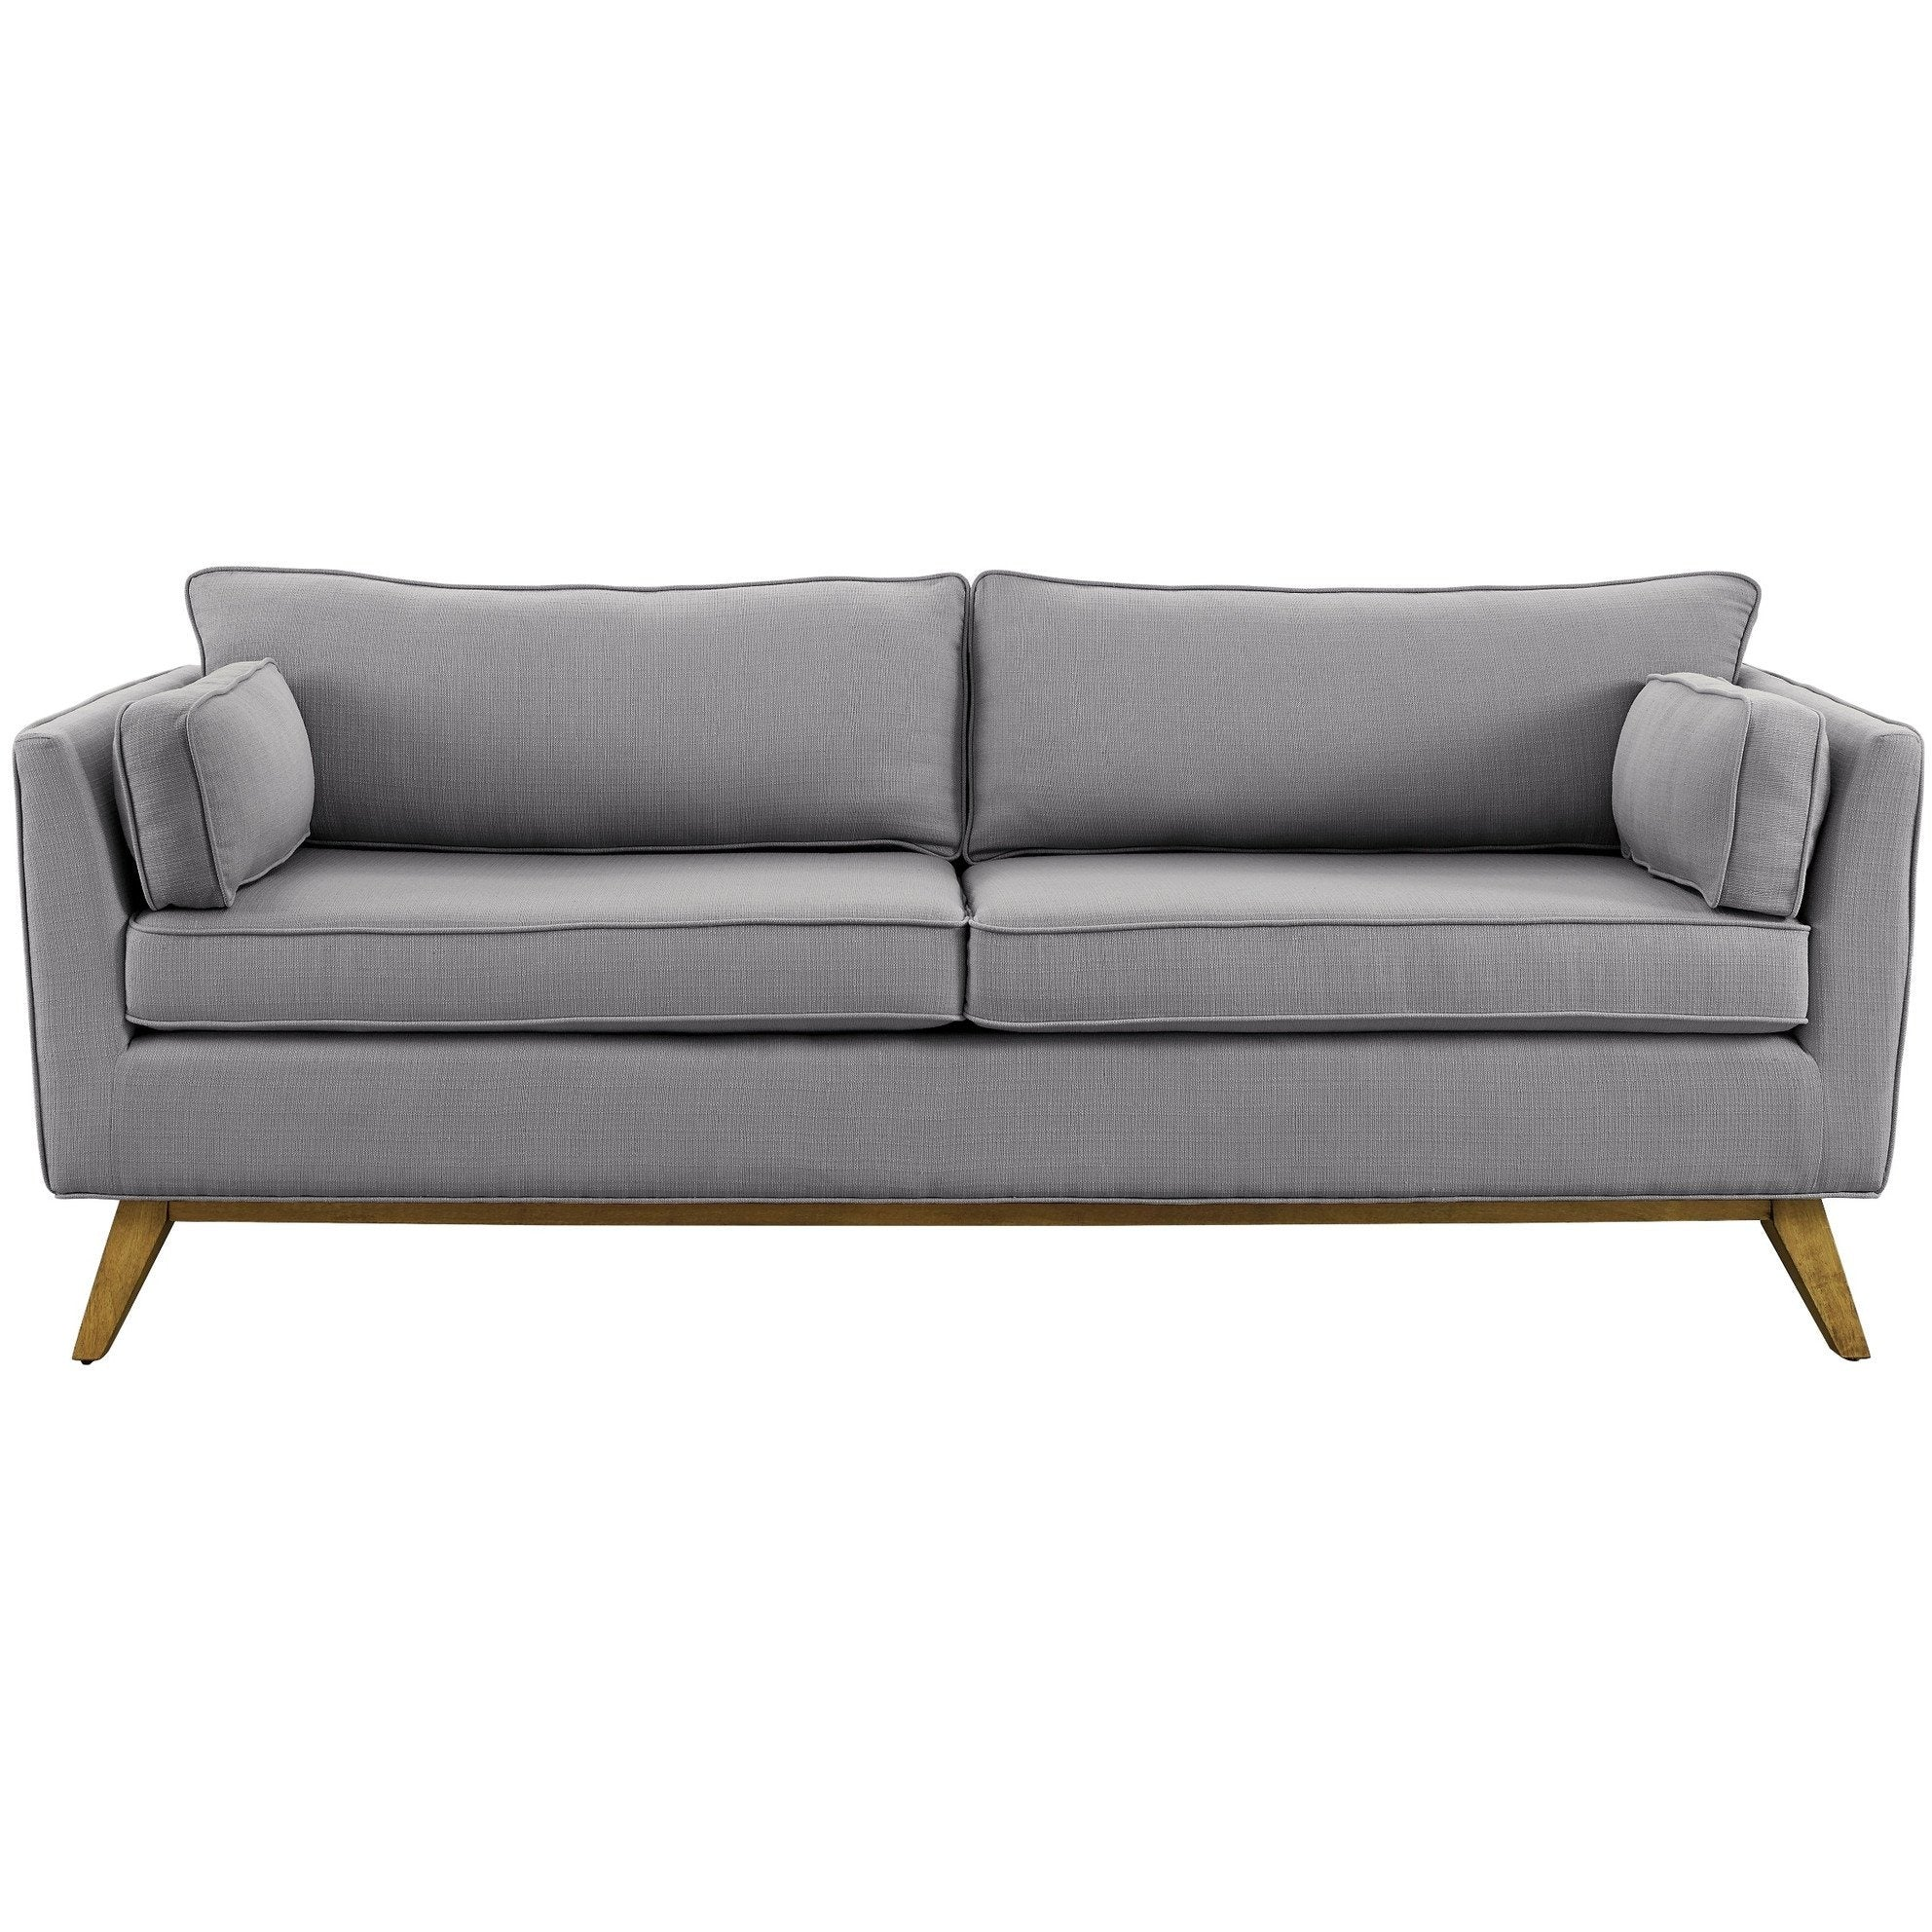 ... TOV Furniture Modern Sussex Light Grey Sofa TOV S40 Minimal U0026 Modern ...